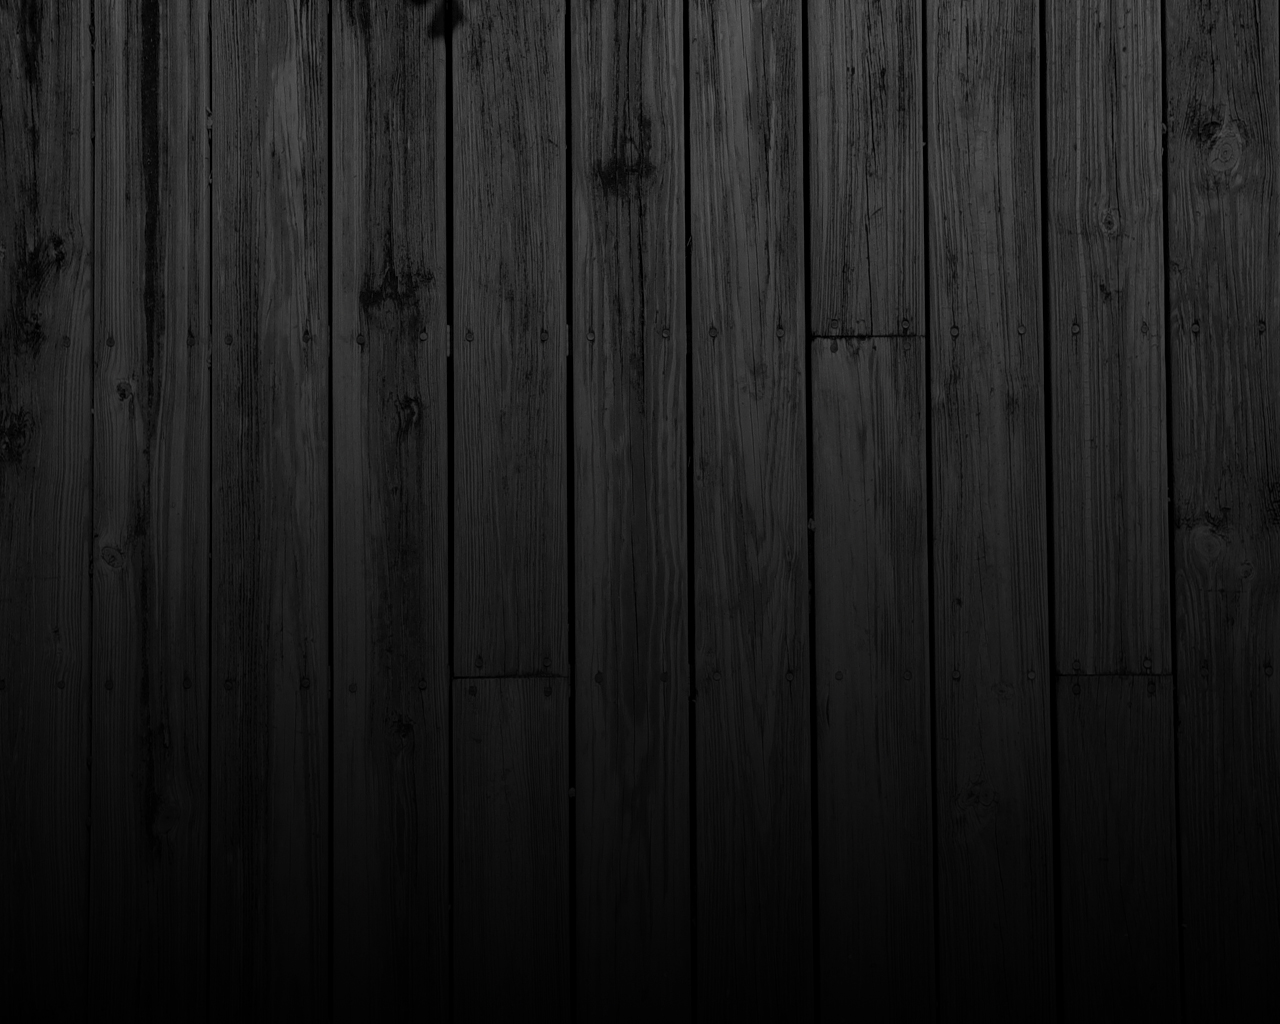 Dark Wooden Planks   Desktop and mobile wallpaper   Wallippo. Wood Plank Wallpaper   WallpaperSafari